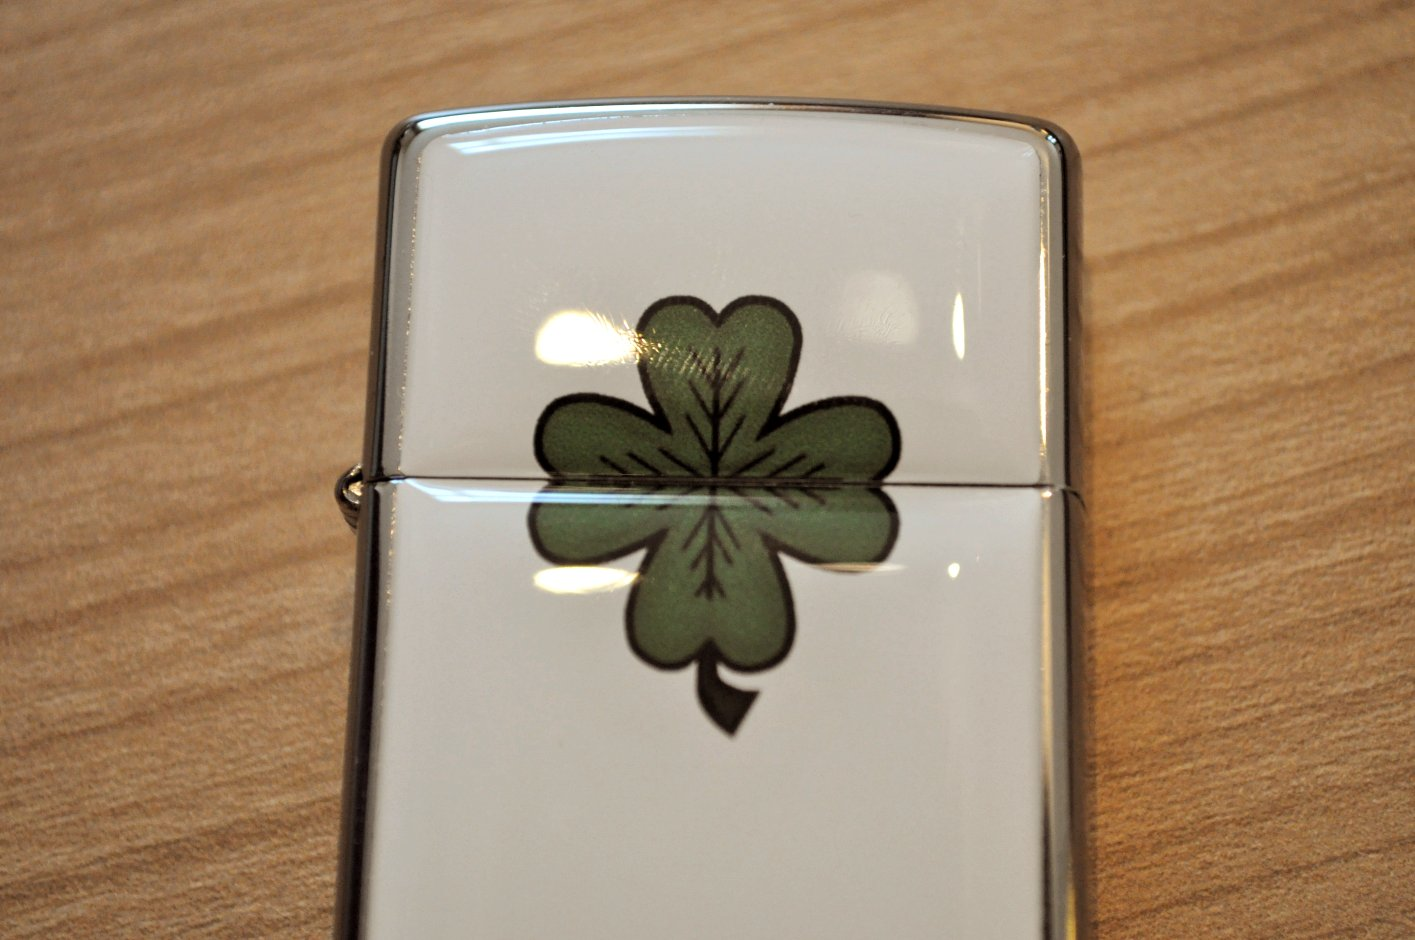 Indy and the Last Crusade: Elsa Zippo Lighter: Luke0312 and